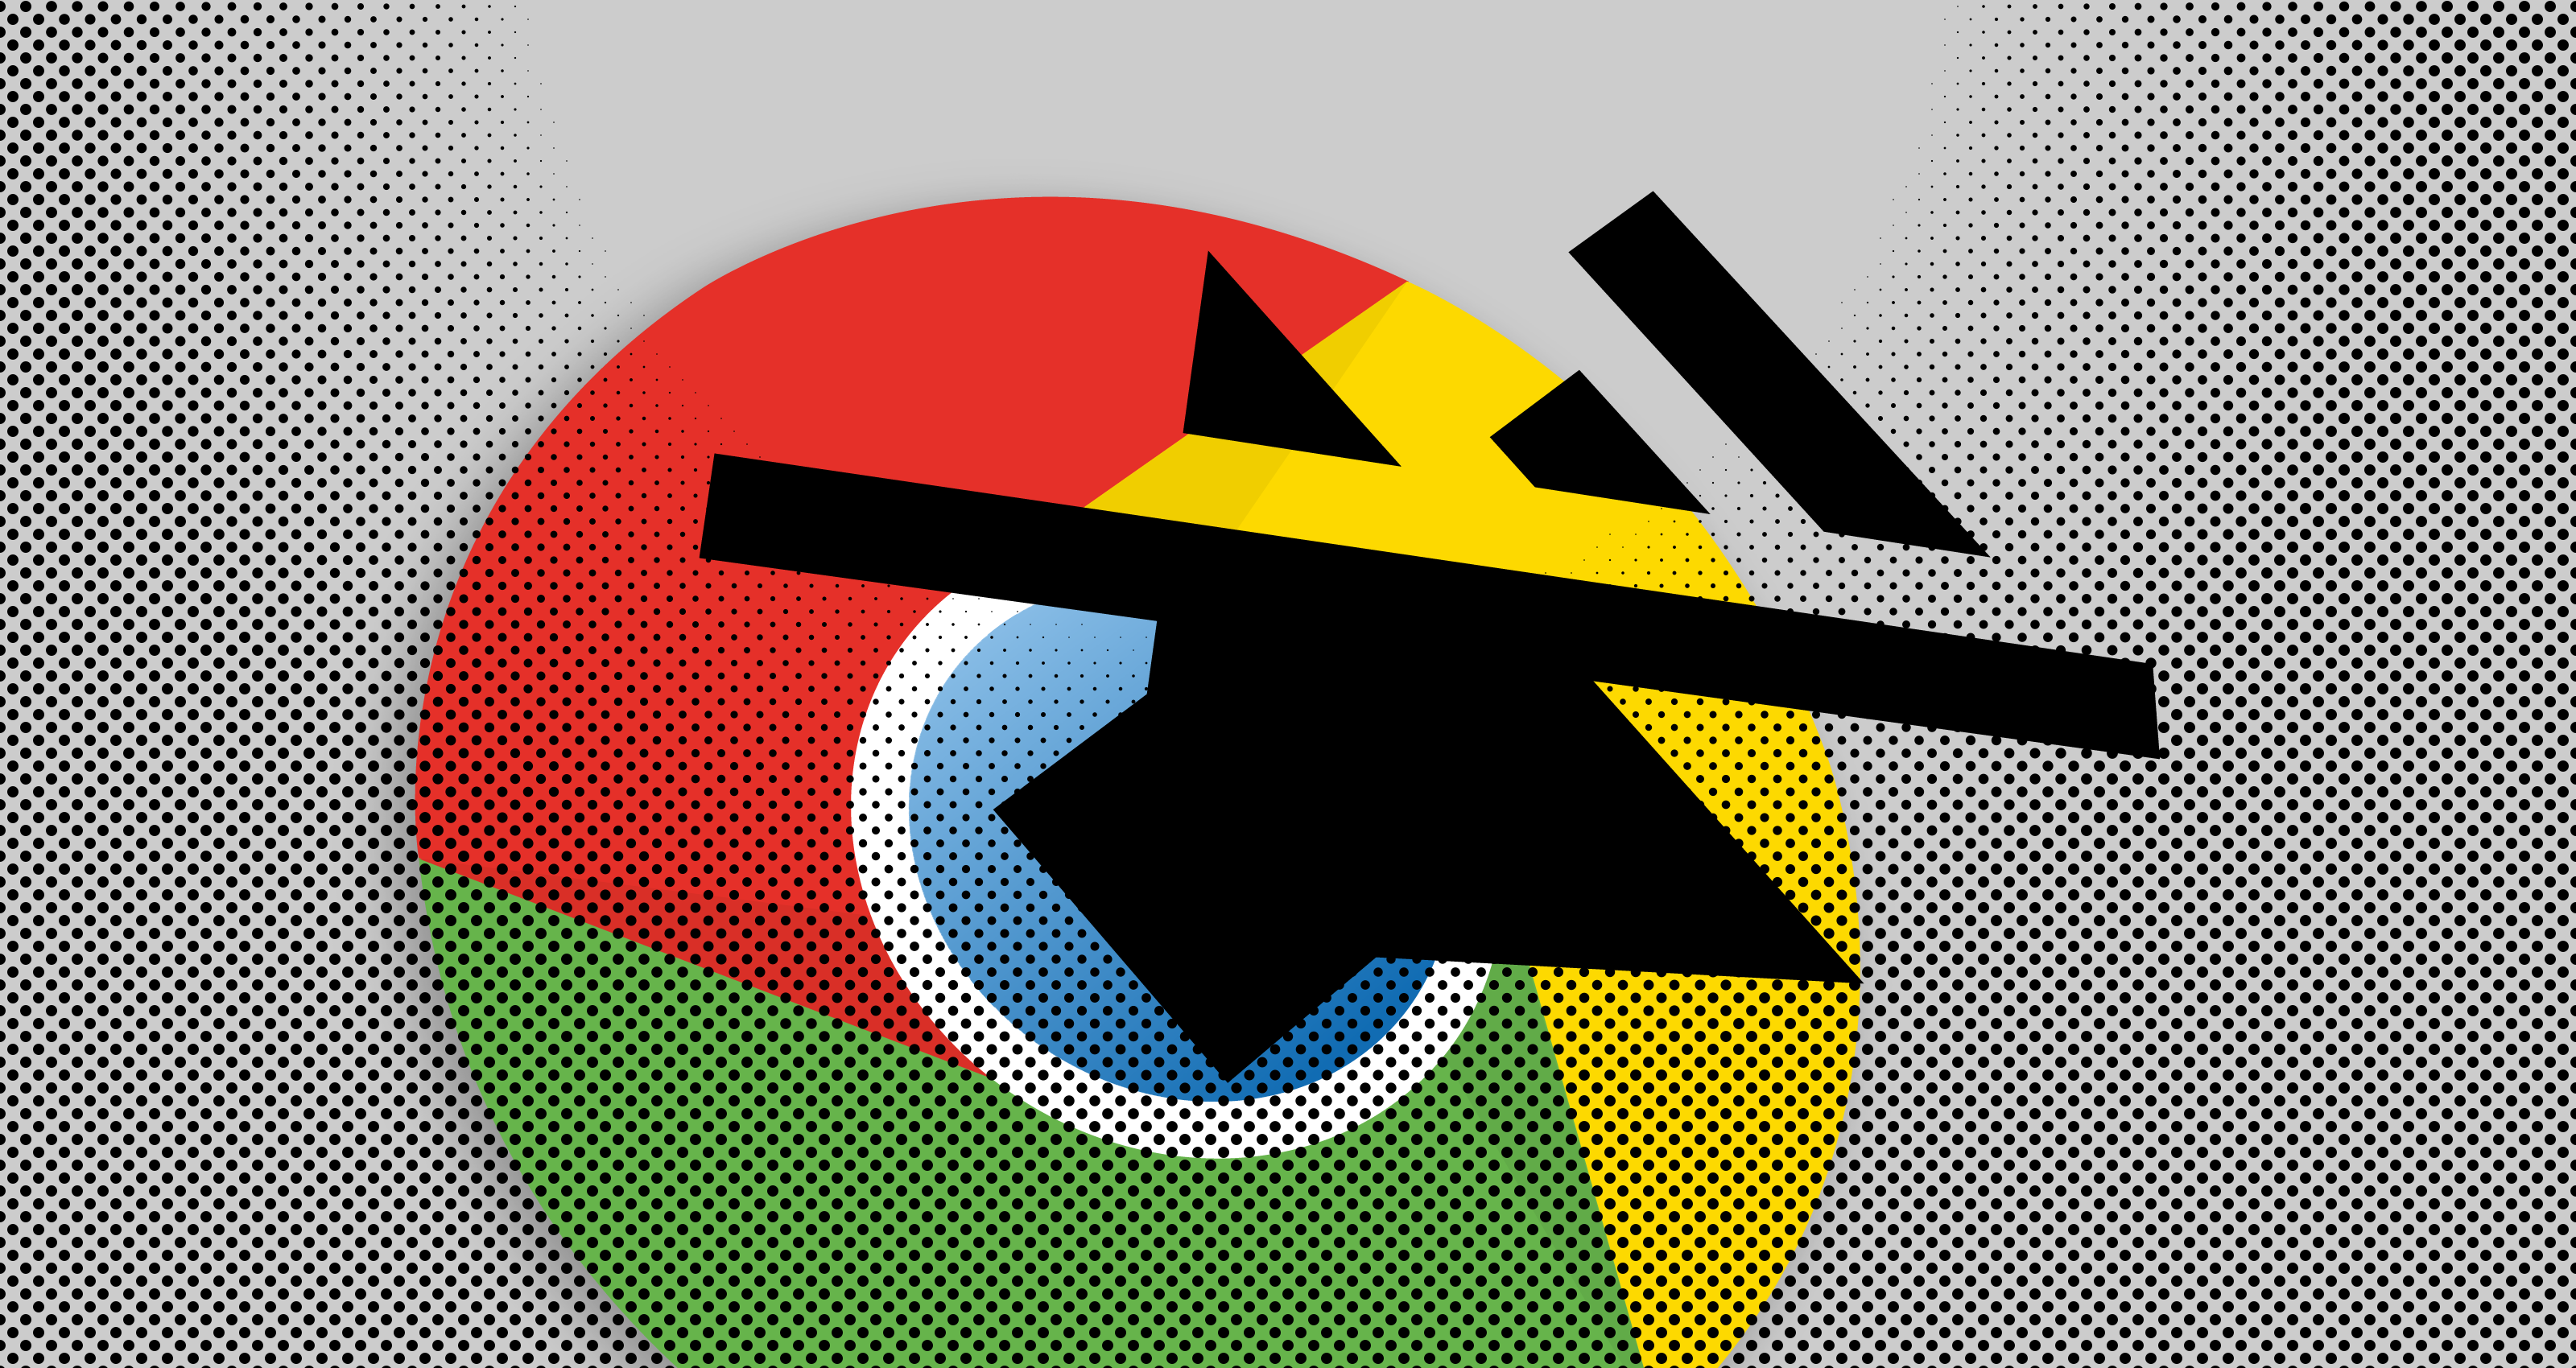 Google Chrome Now Mutes Annoying Autoplay Videos Based On Your Browsing Habits